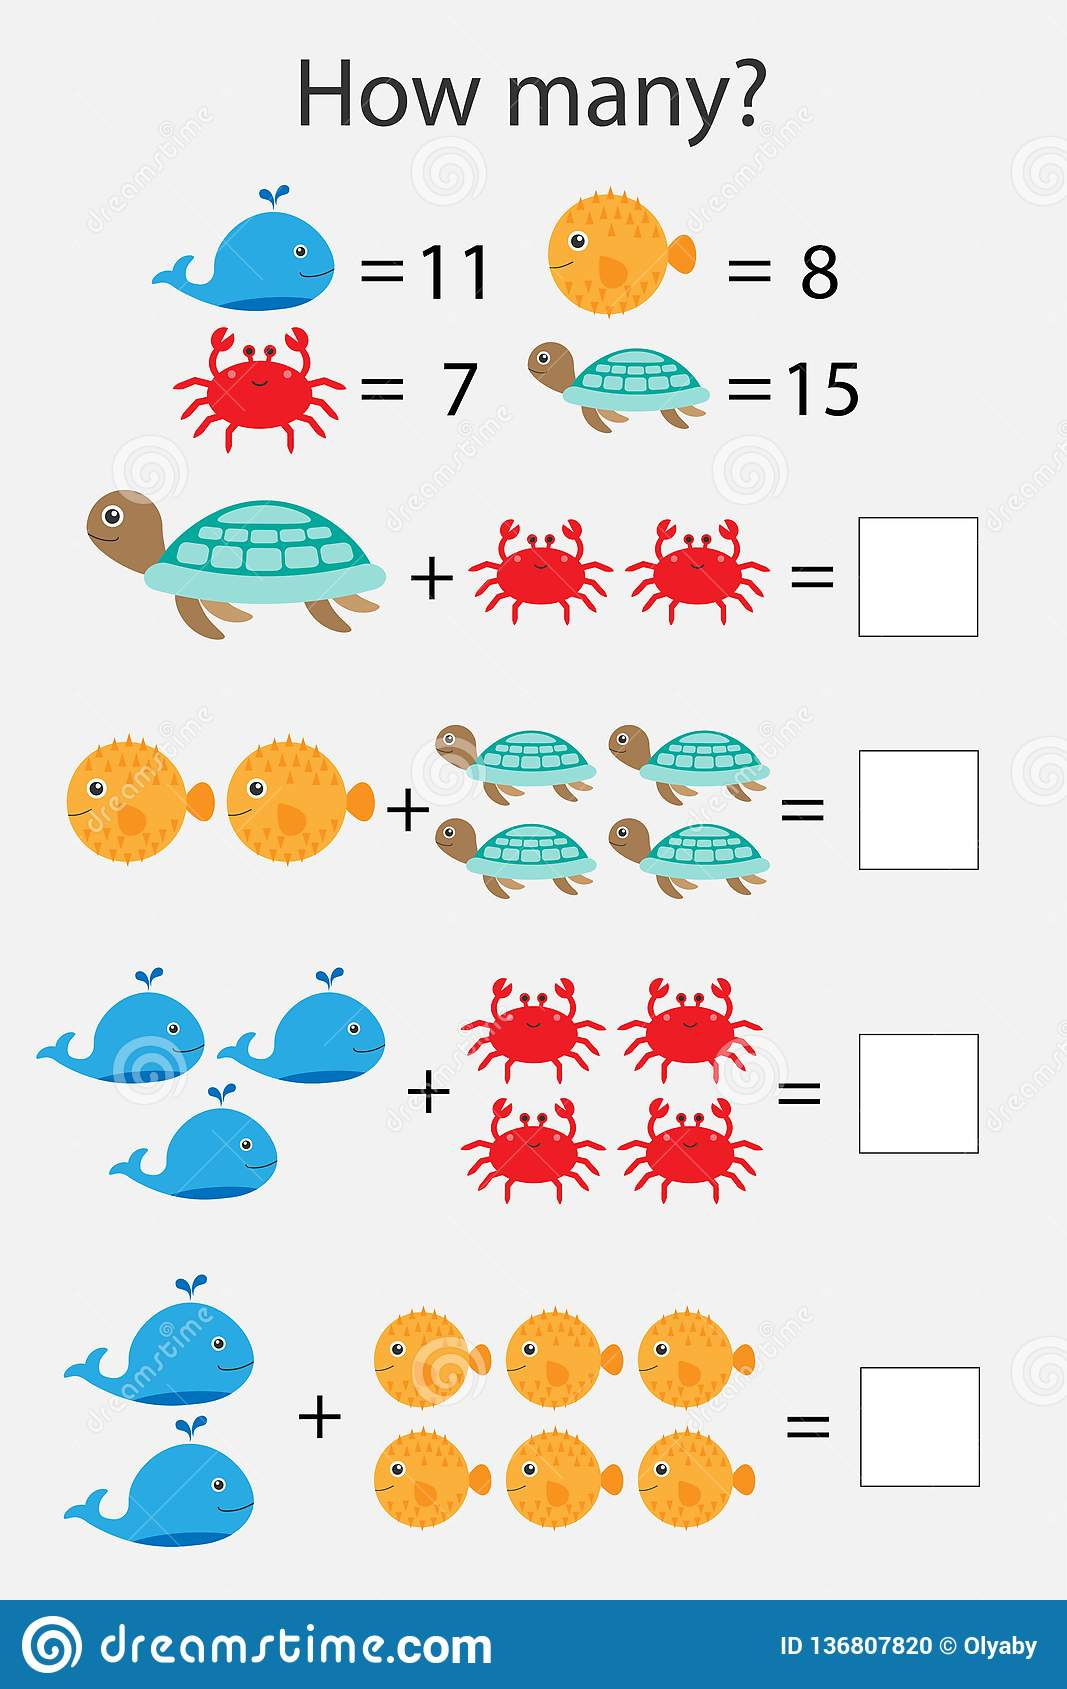 How Many Counting Game With Ocean Animals For Kids